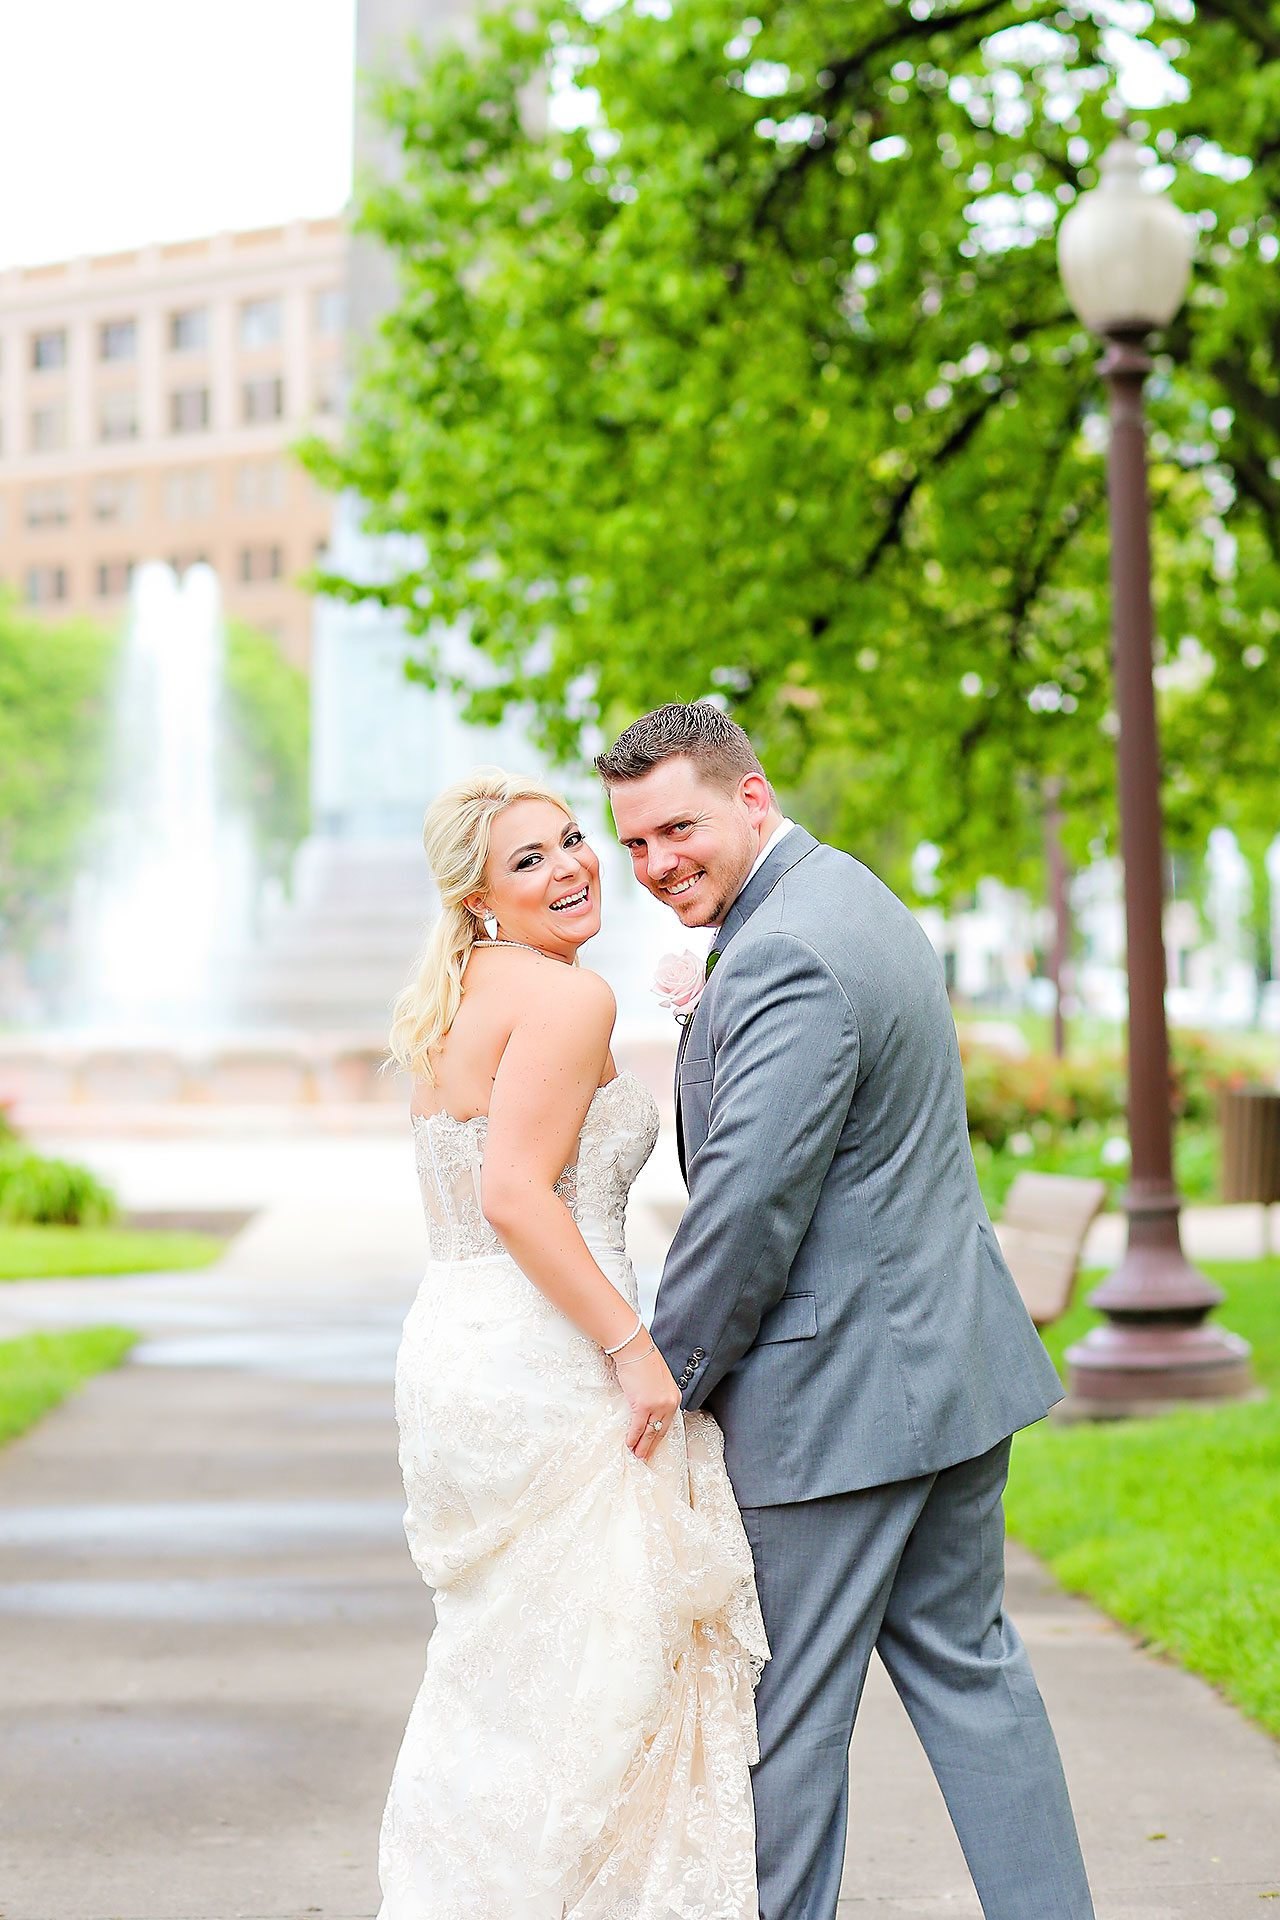 Lauren Bryan Scottish Rite Indianapolis Wedding 122